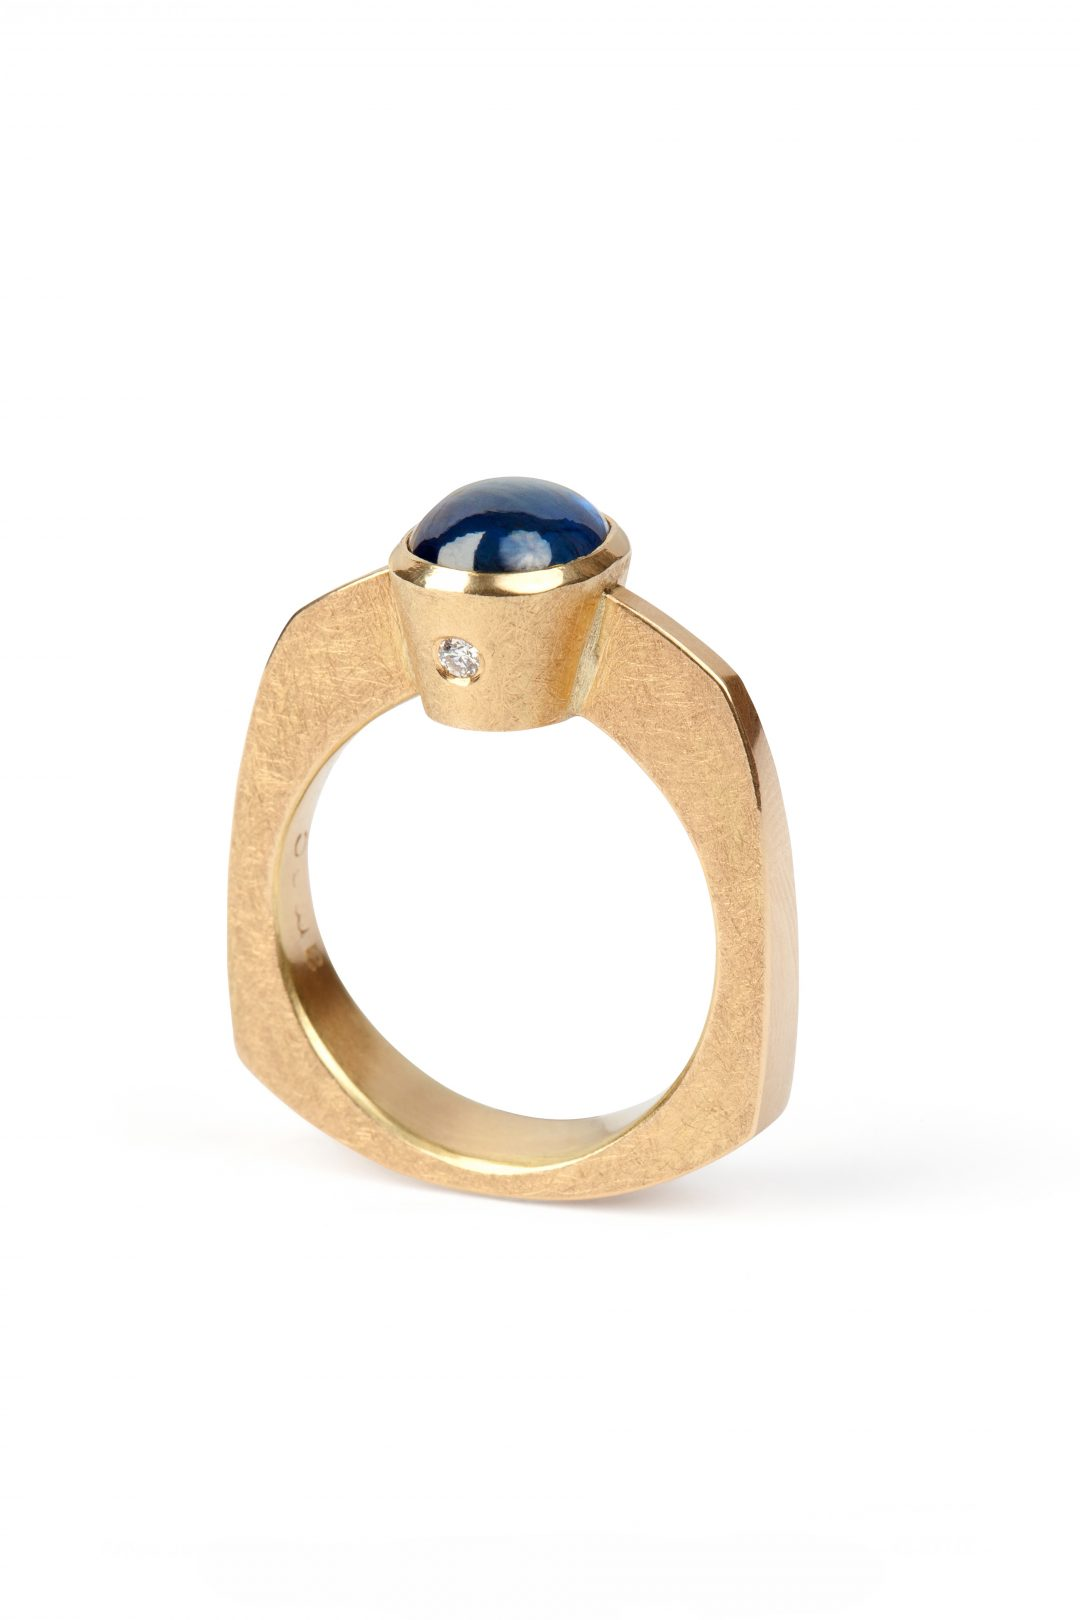 Palace ring, 18ct yellow gold diamond and sapphire